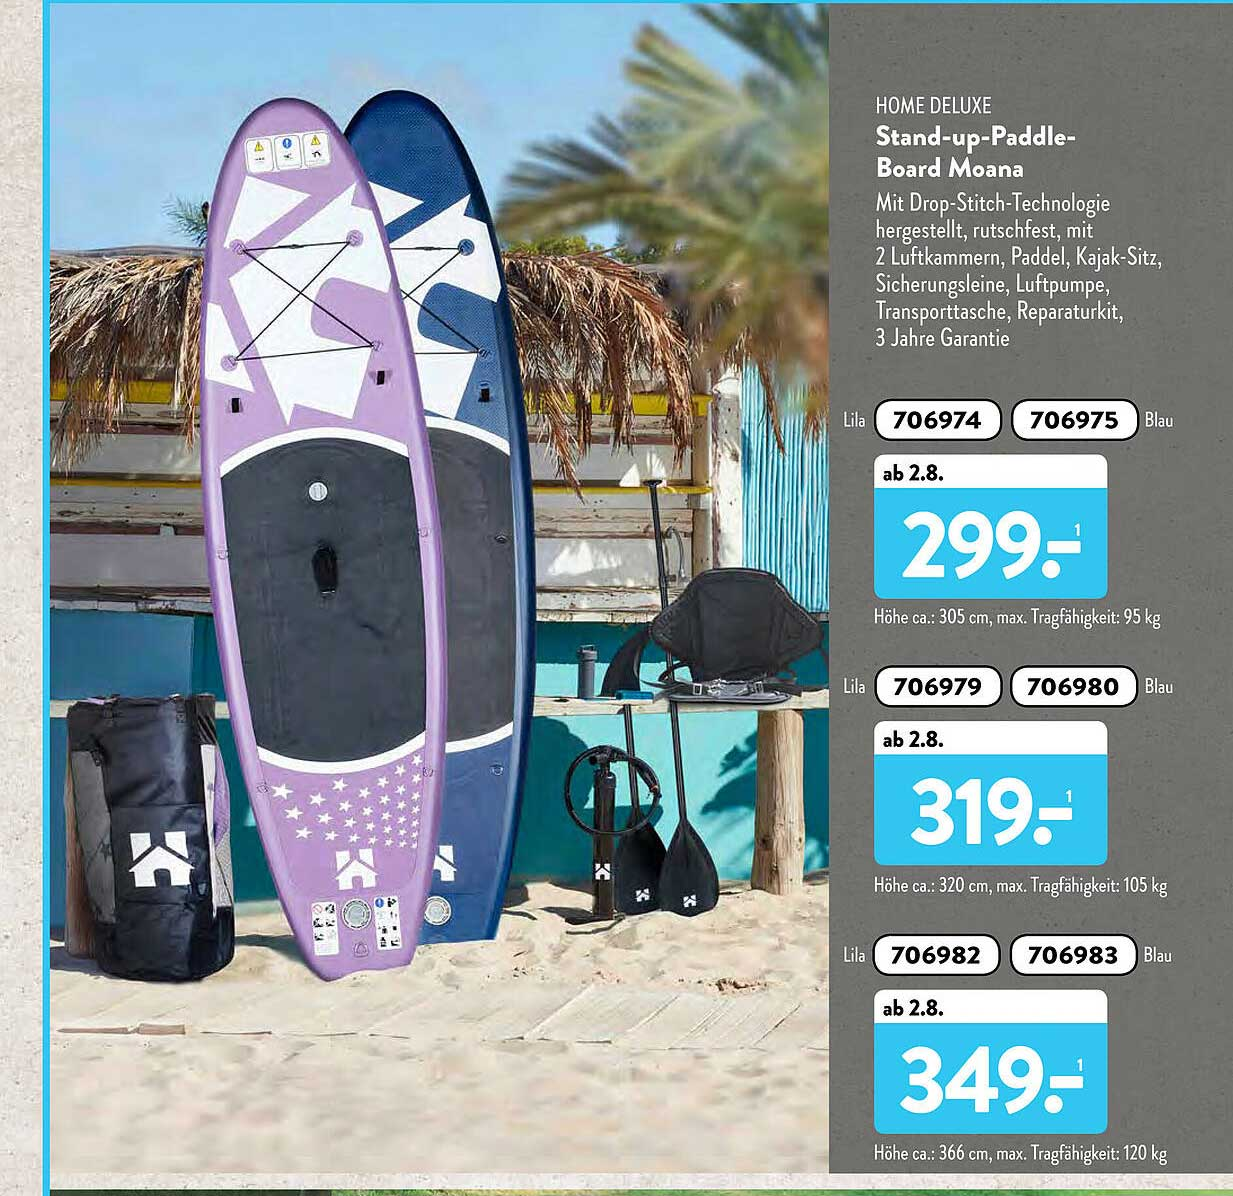 ALDI SÜD Home Deluxe Stand-up-paddle-board Moana